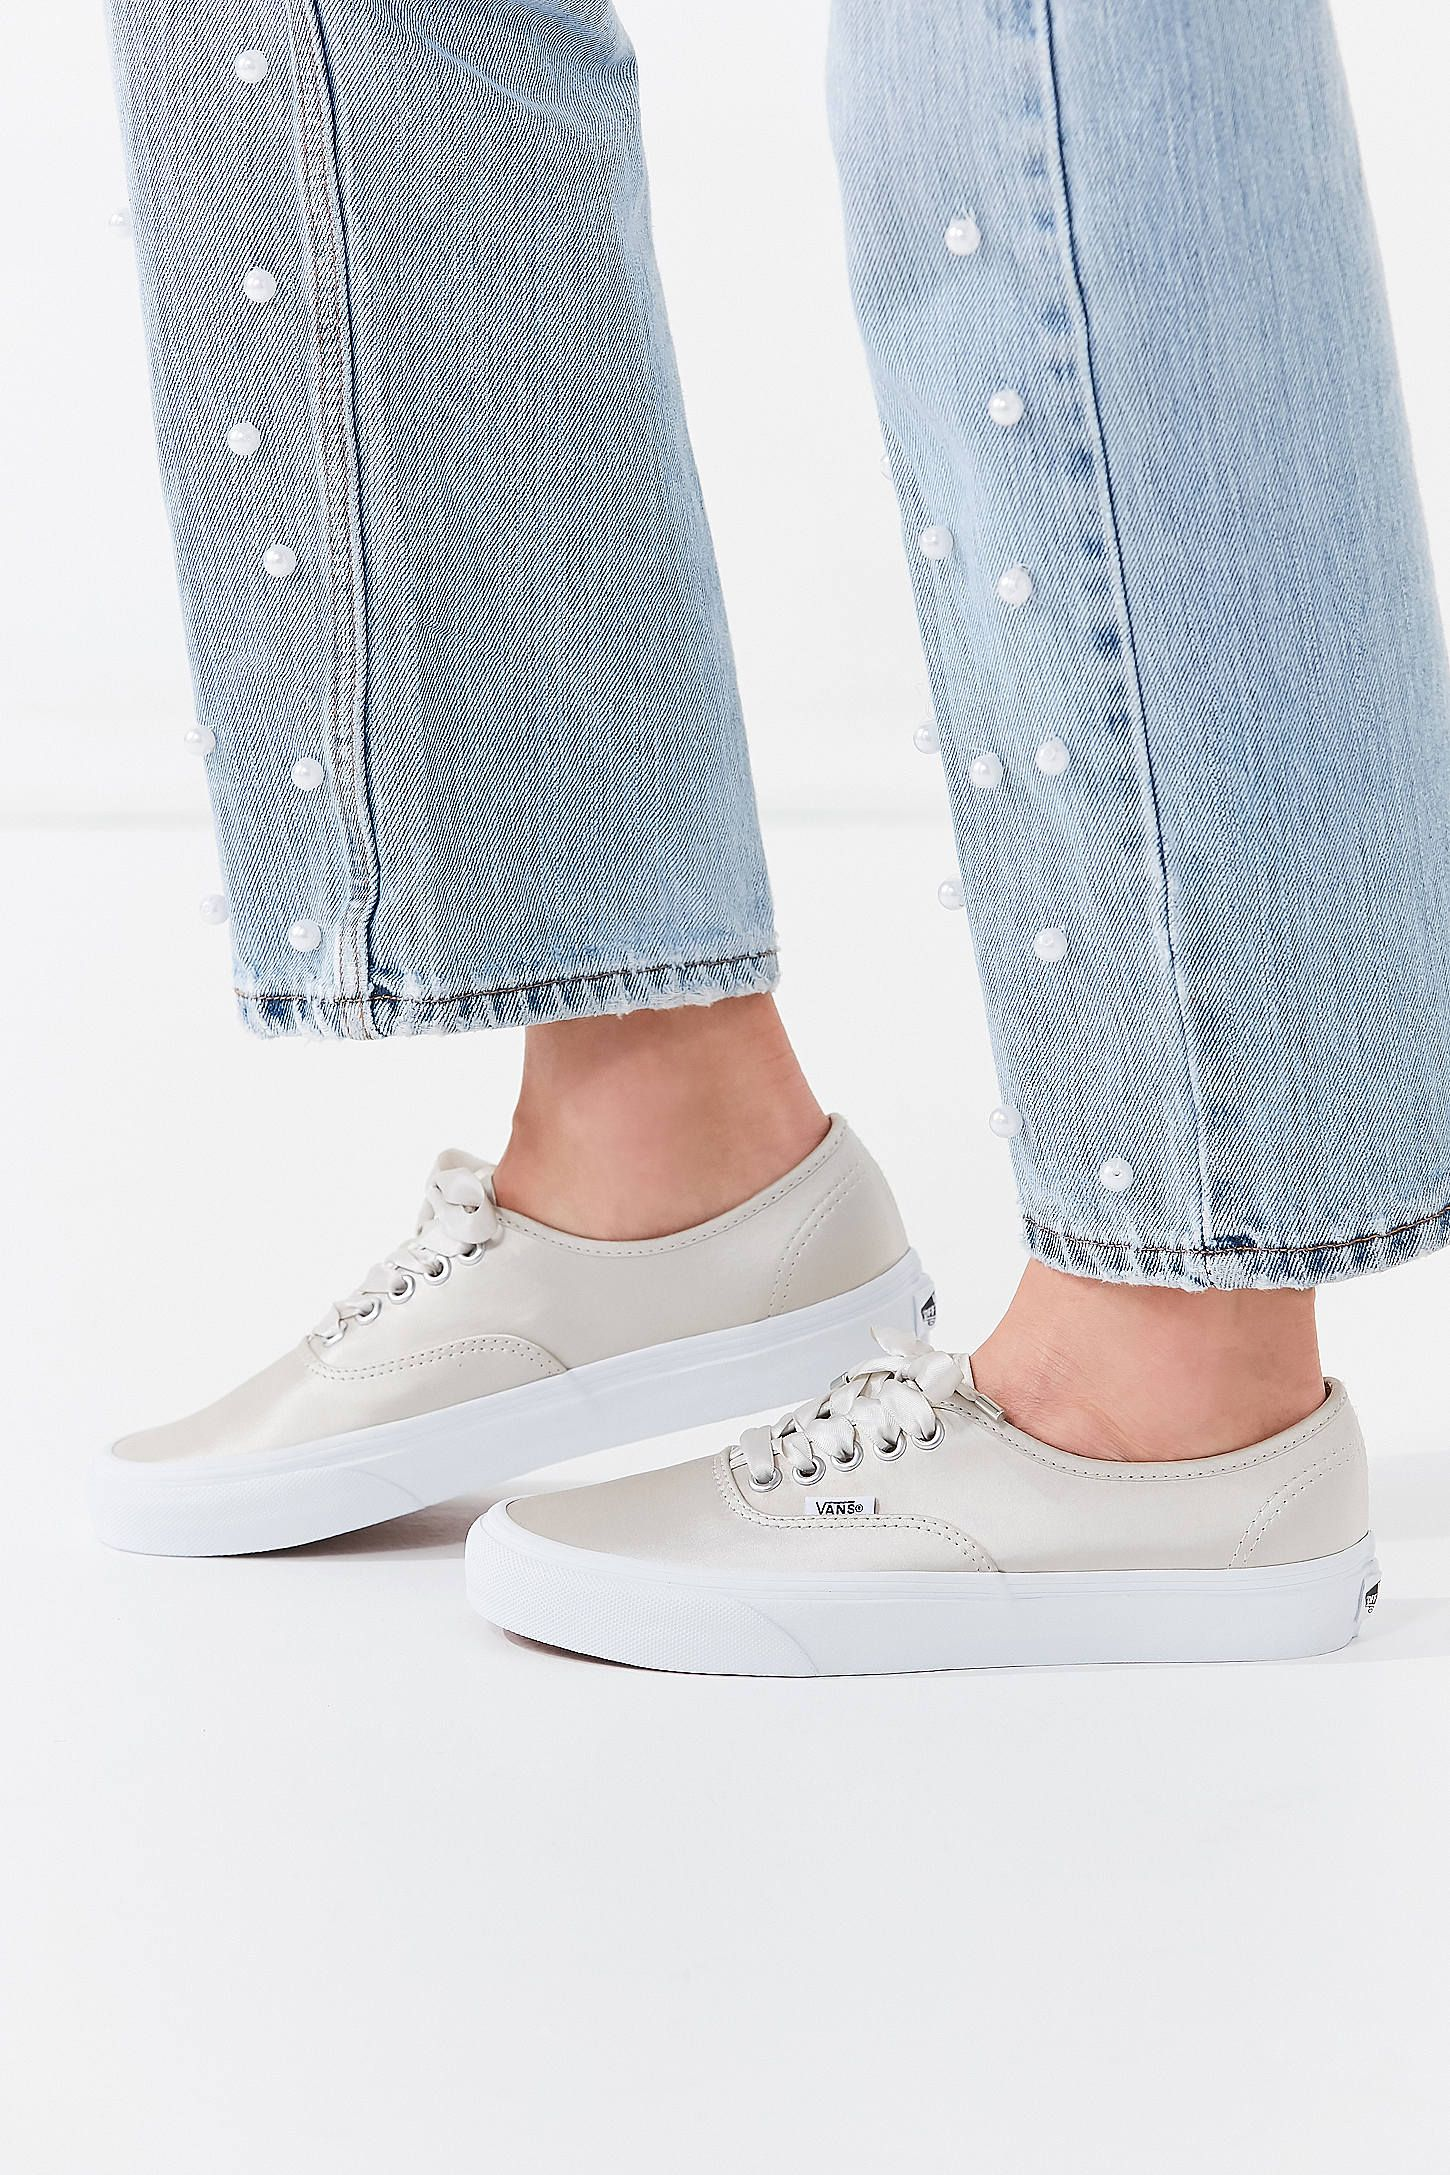 f9aa798037 Shop Vans Satin Lux Authentic Sneaker at Urban Outfitters today. We carry  all the latest styles